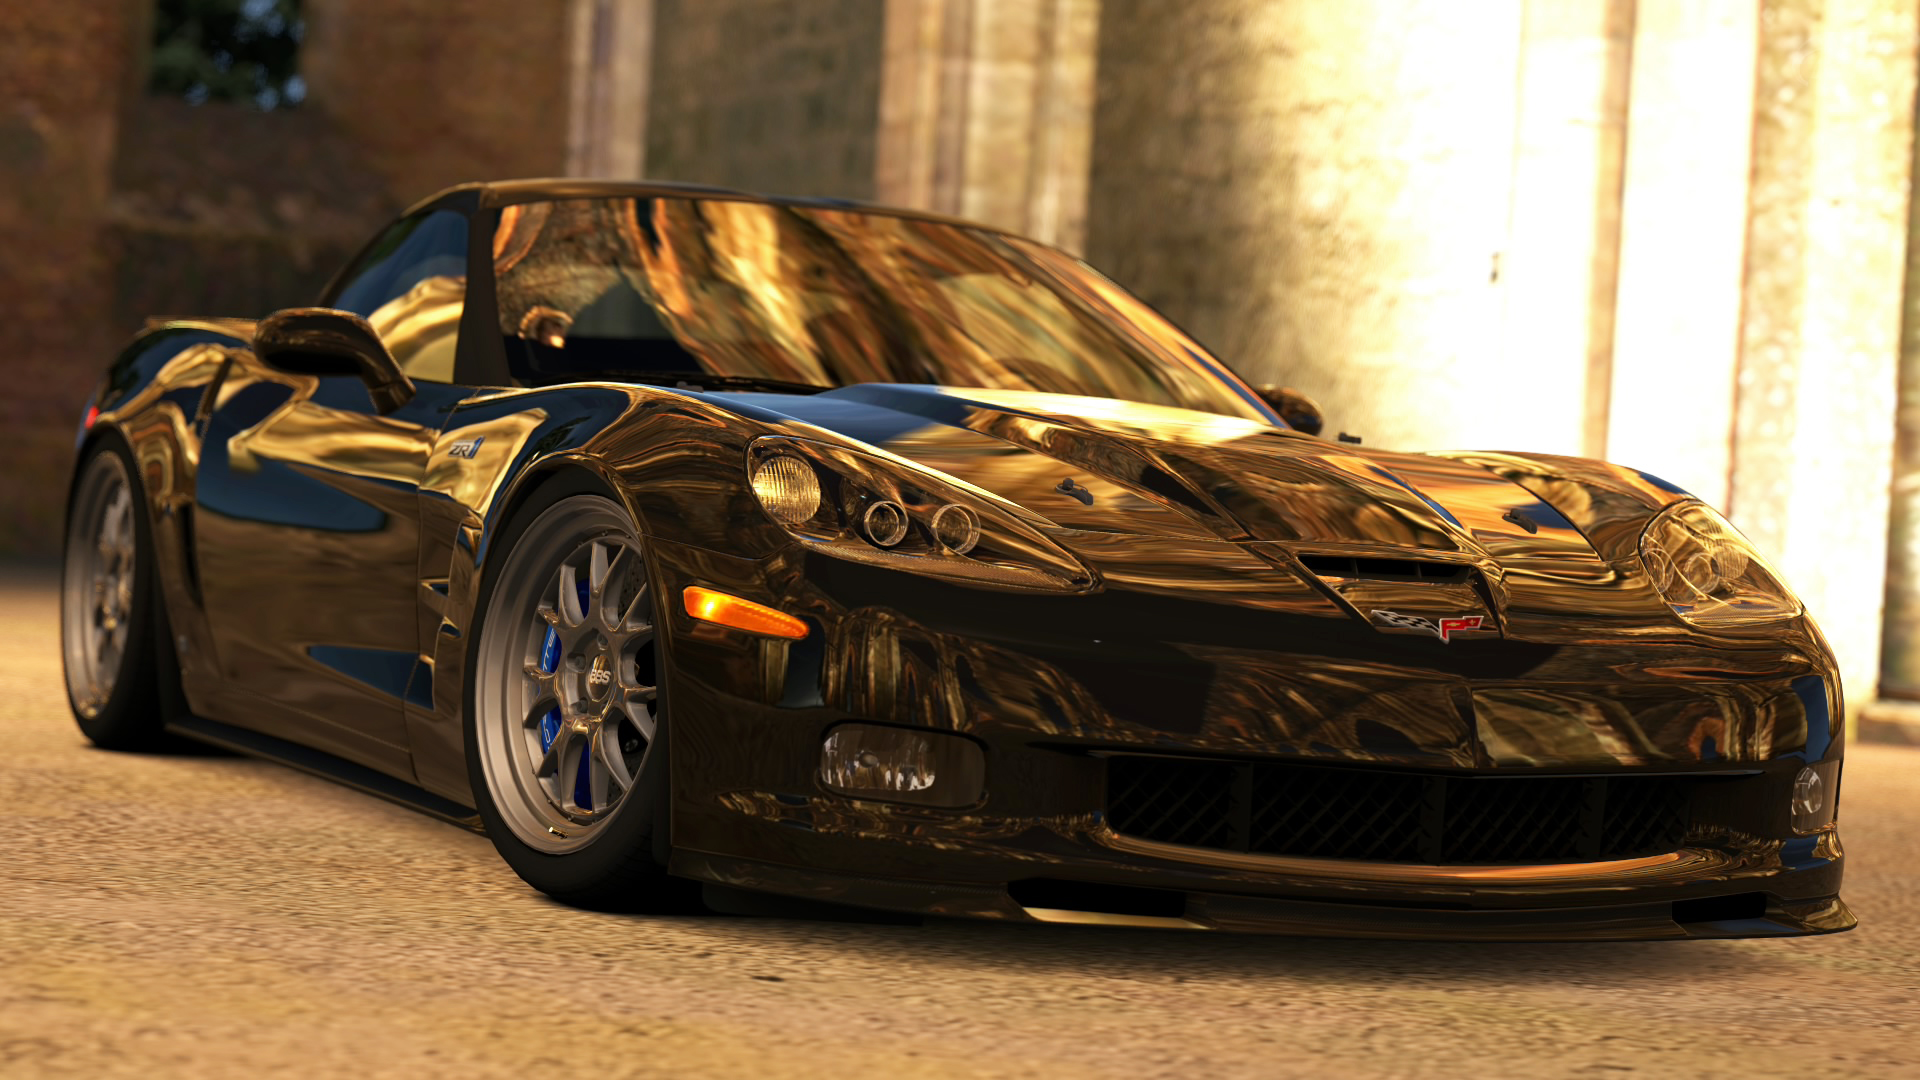 Corvette Zr1 Wallpaper Hd   1551903 1920x1080